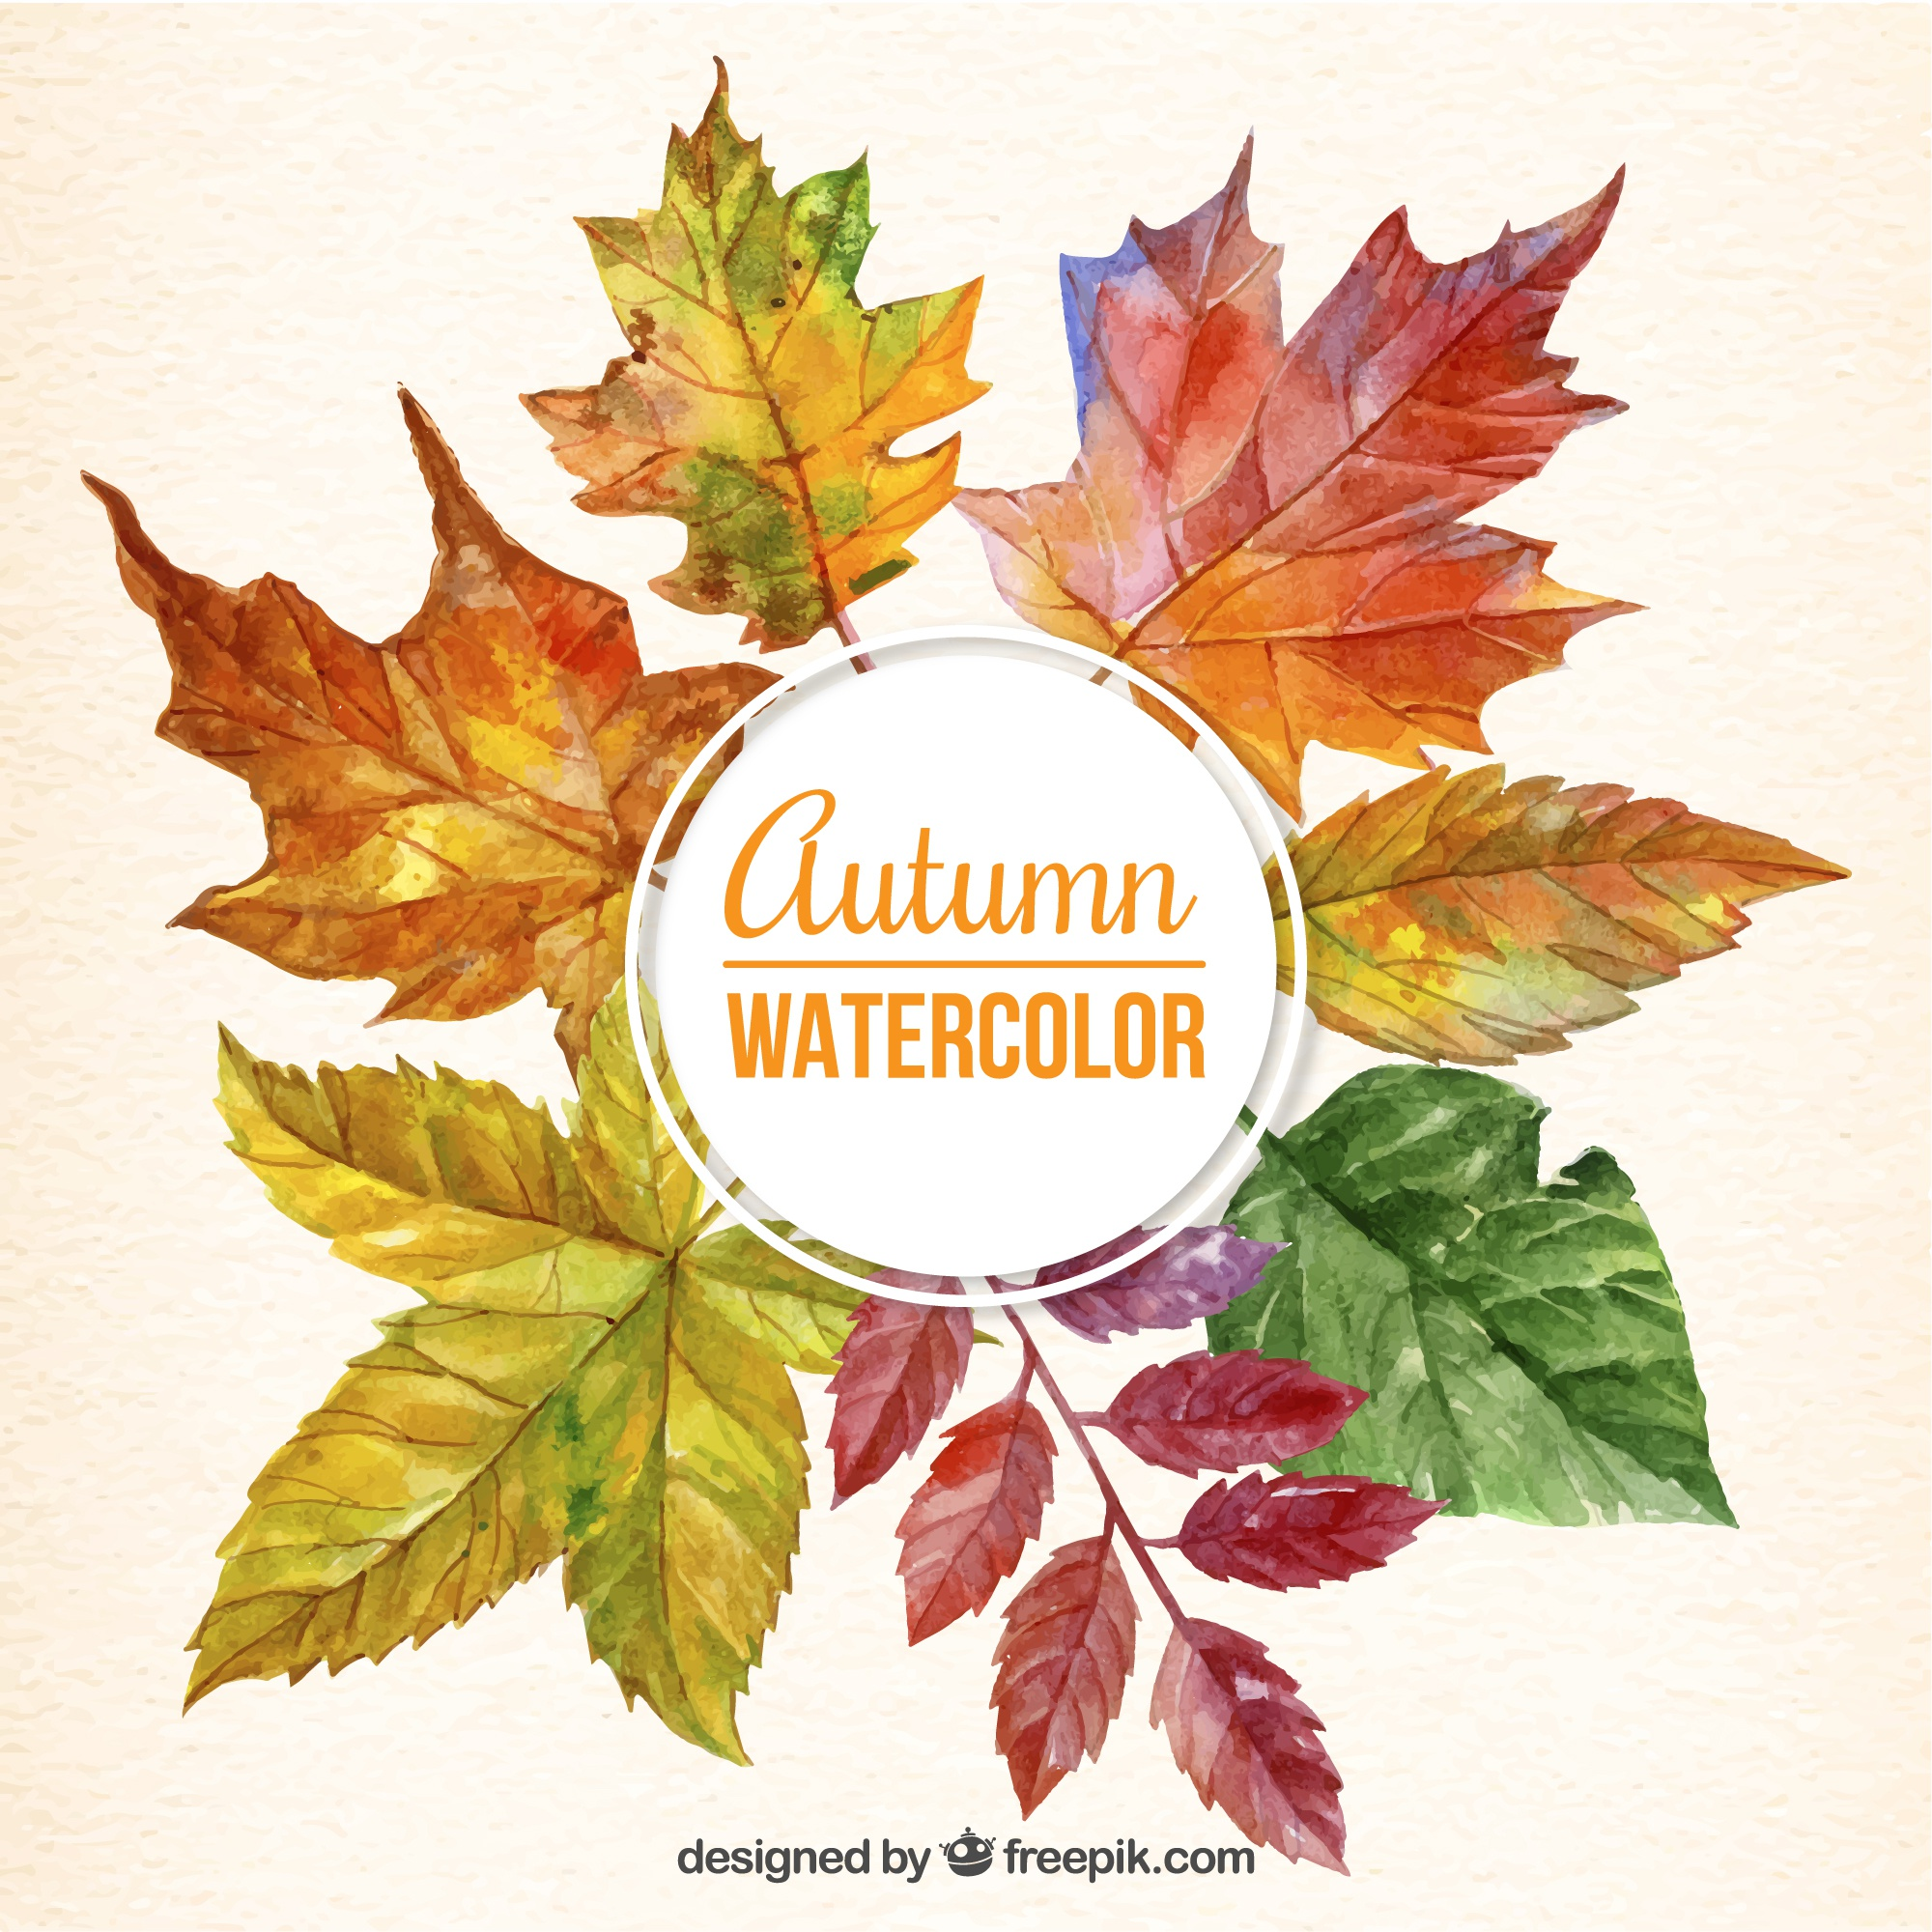 Cute background of watercolor autumnal leaves